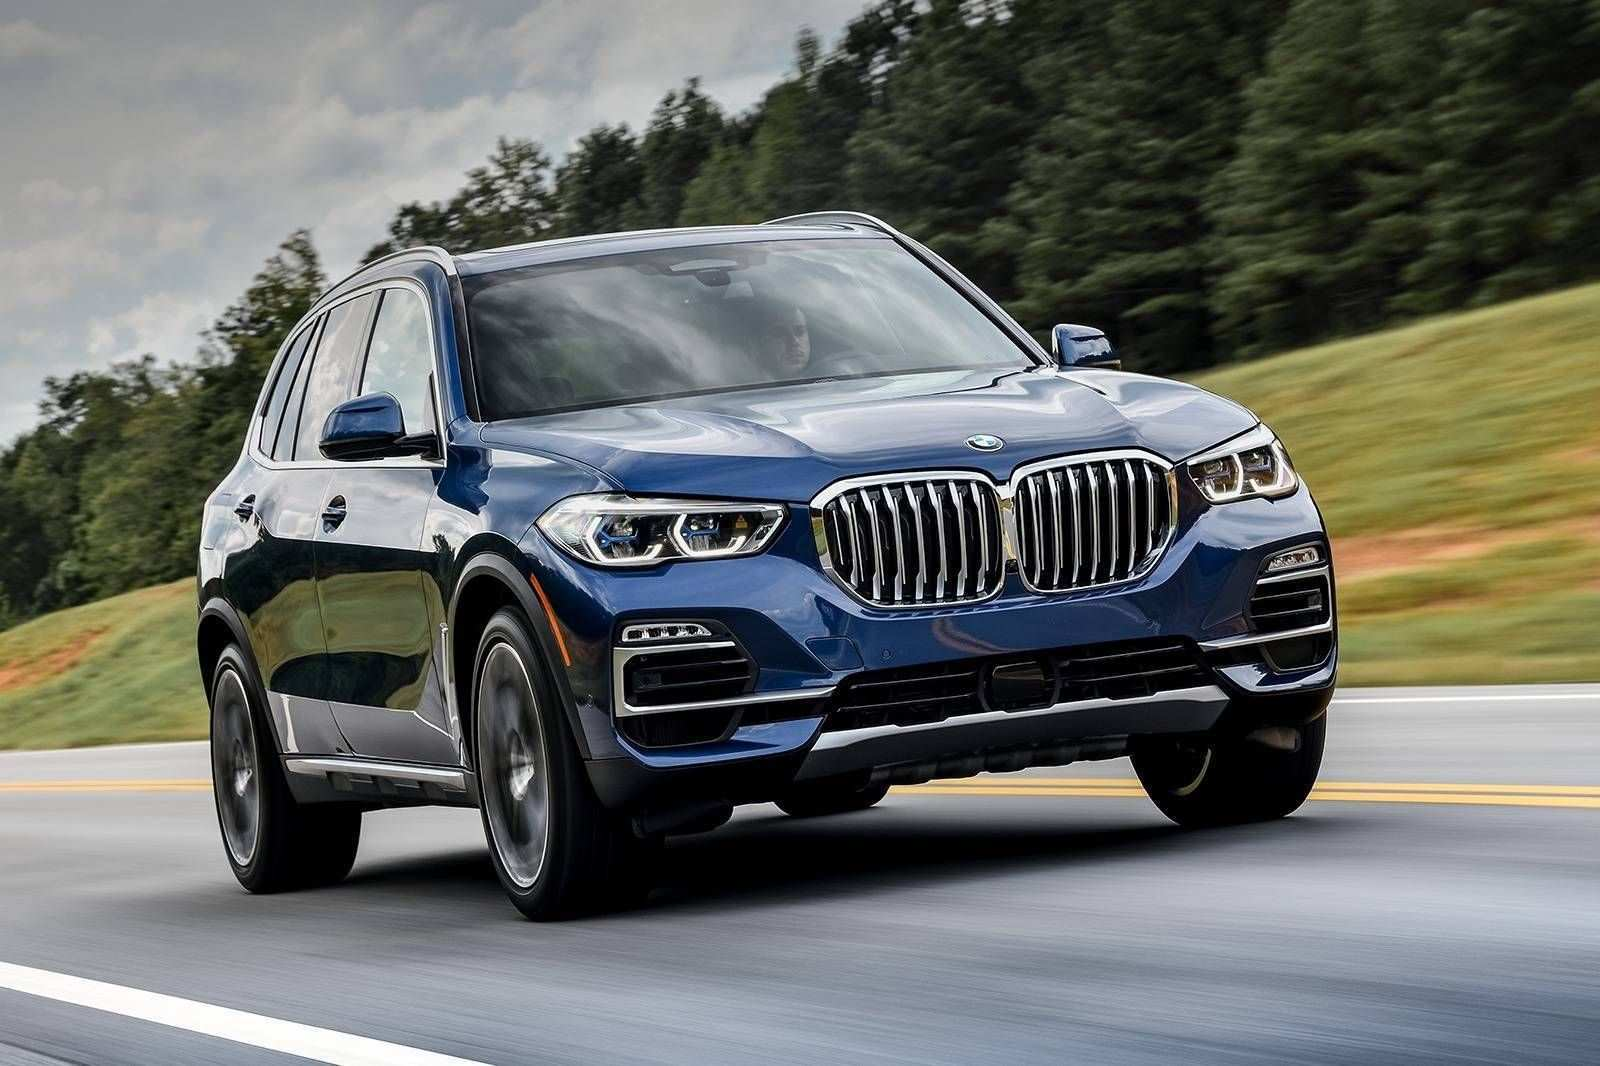 55 All New 2019 Bmw Terrain Interior Redesign And Review